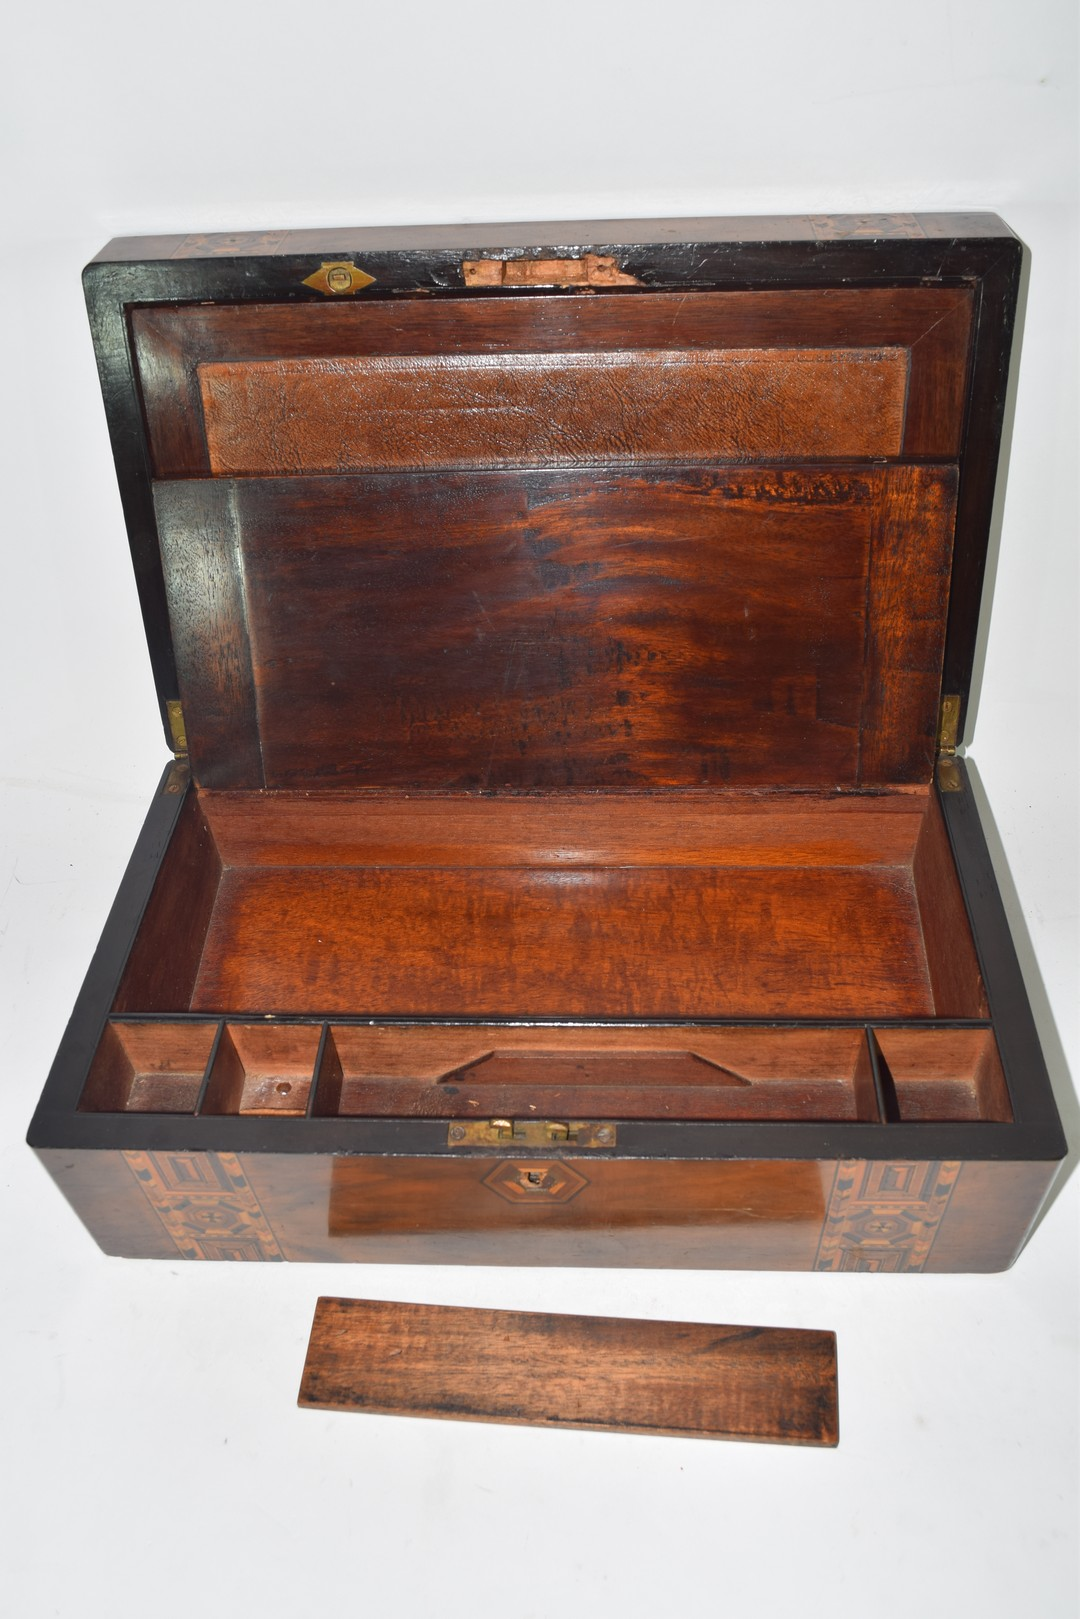 Late 19th century walnut and marquetry inlaid writing box - Image 6 of 6